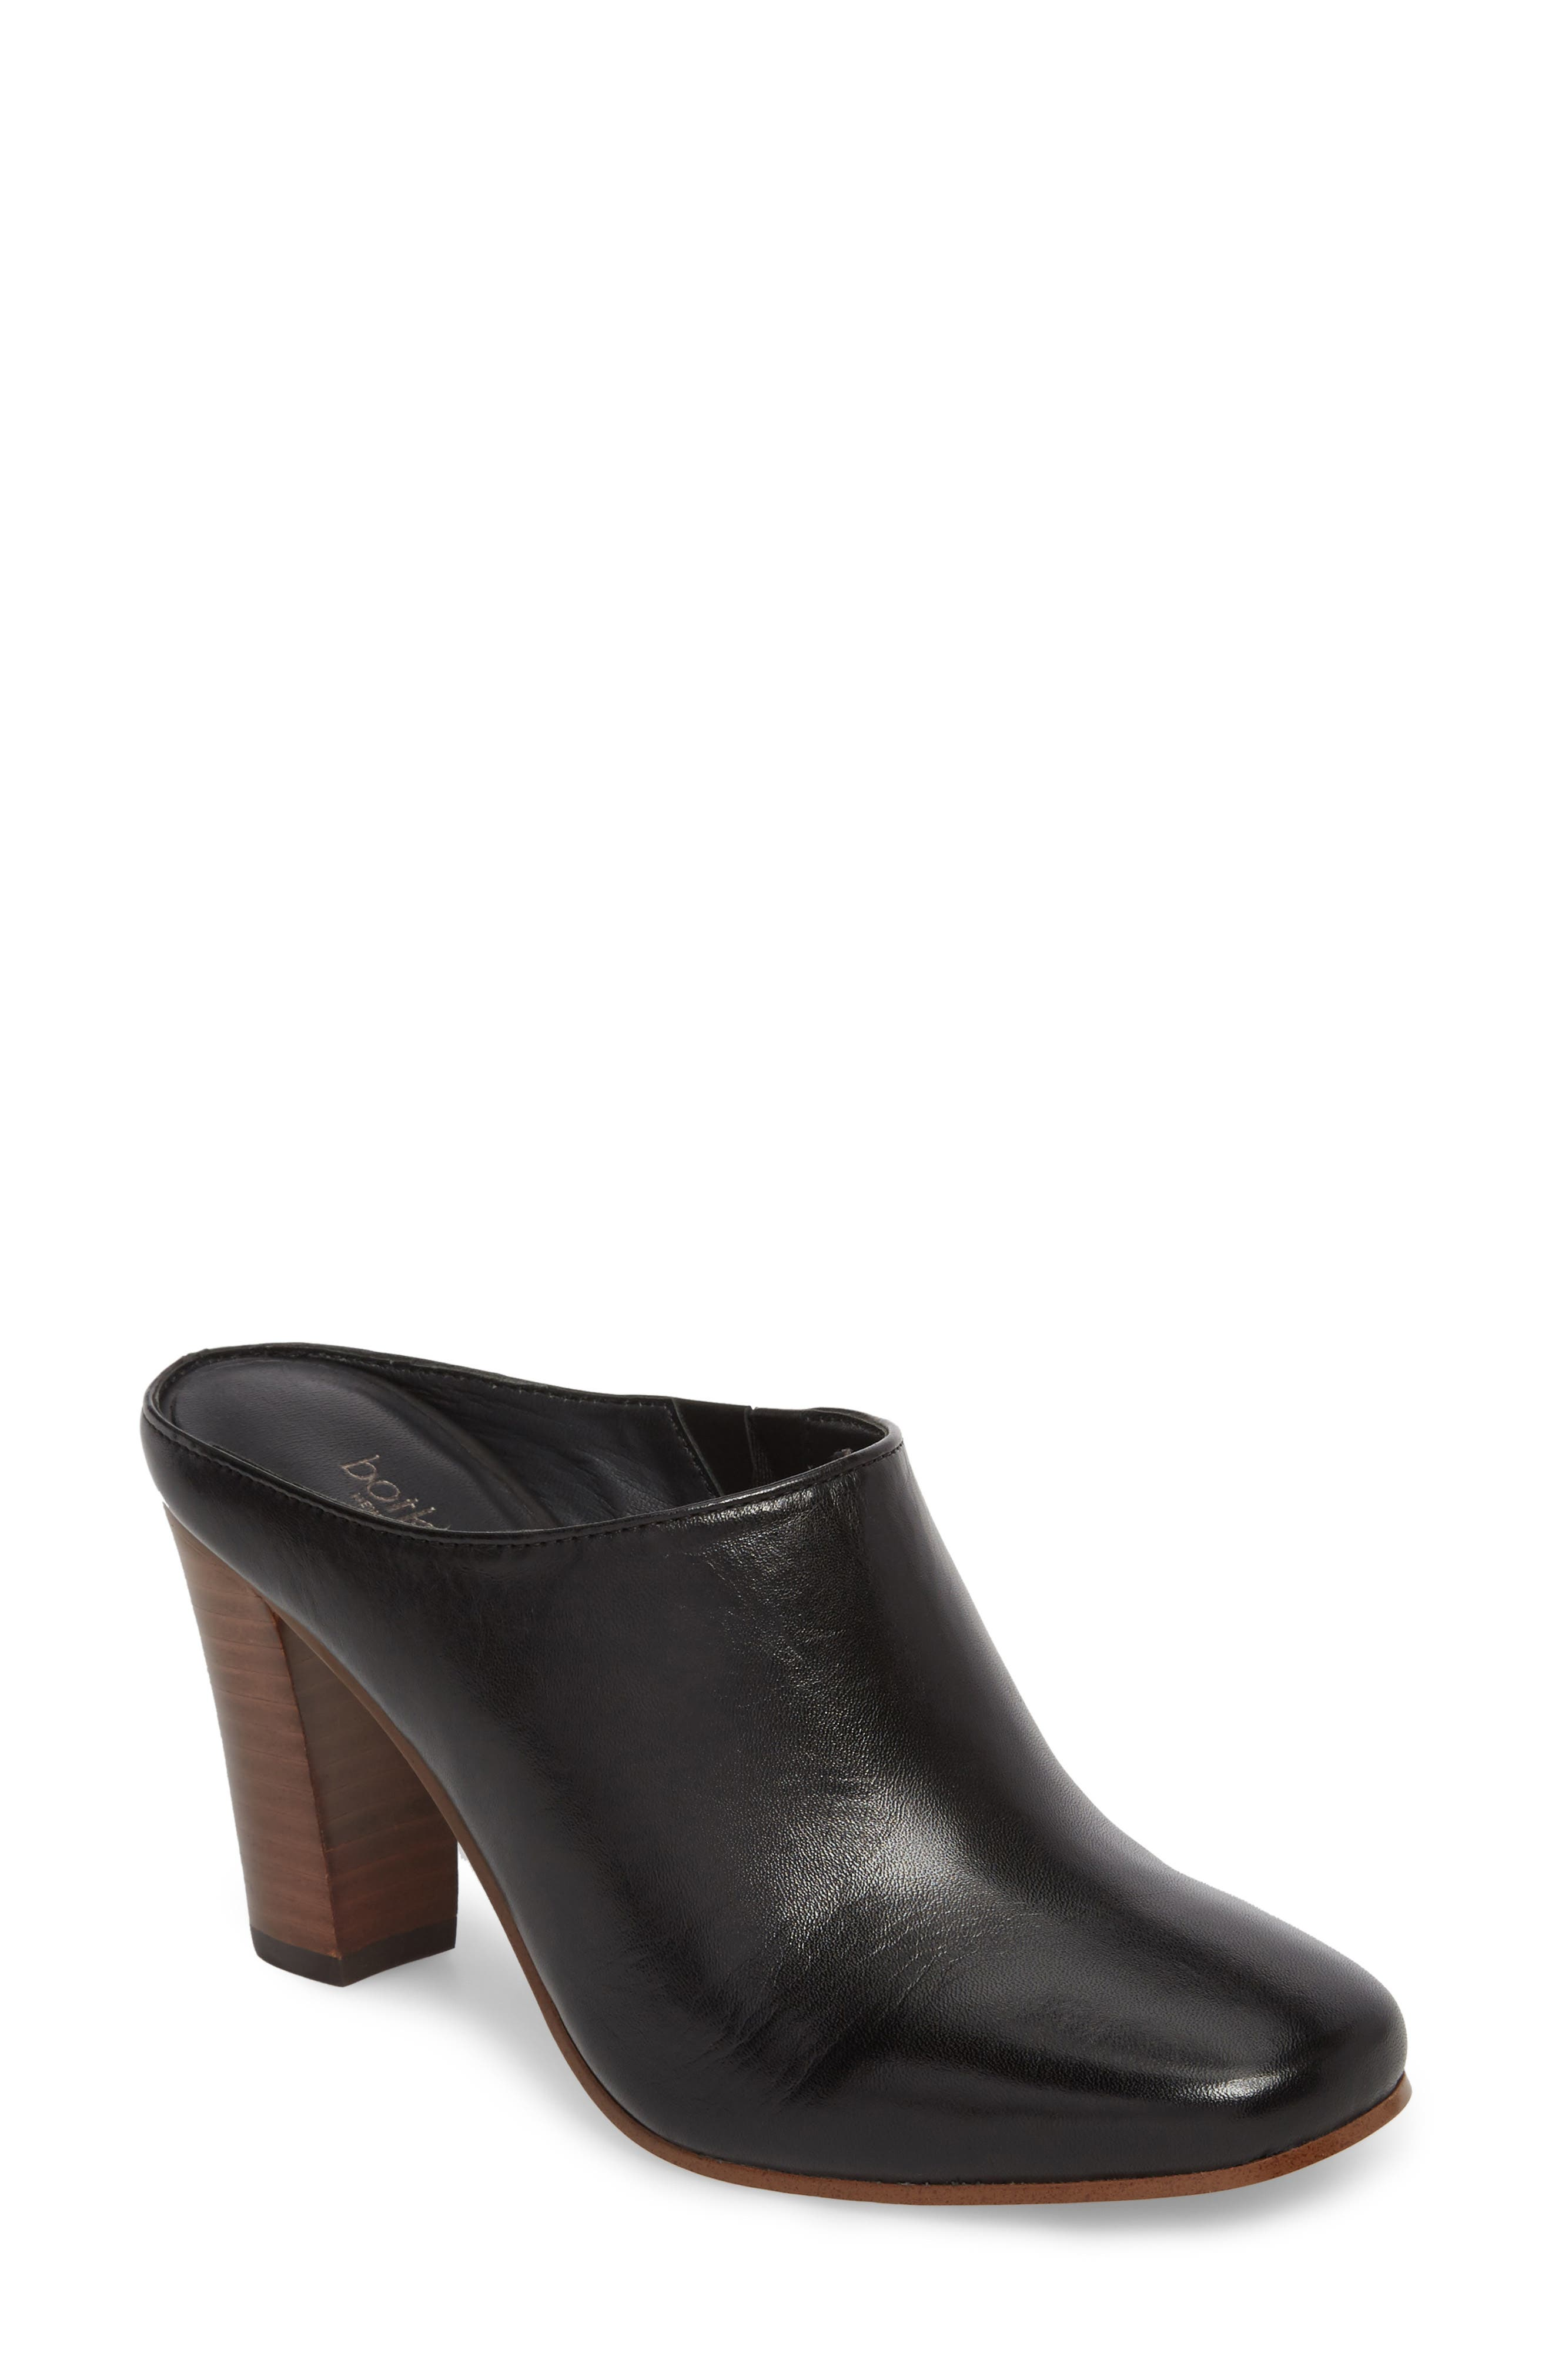 Sherry Mule,                         Main,                         color, Black Nappa Leather